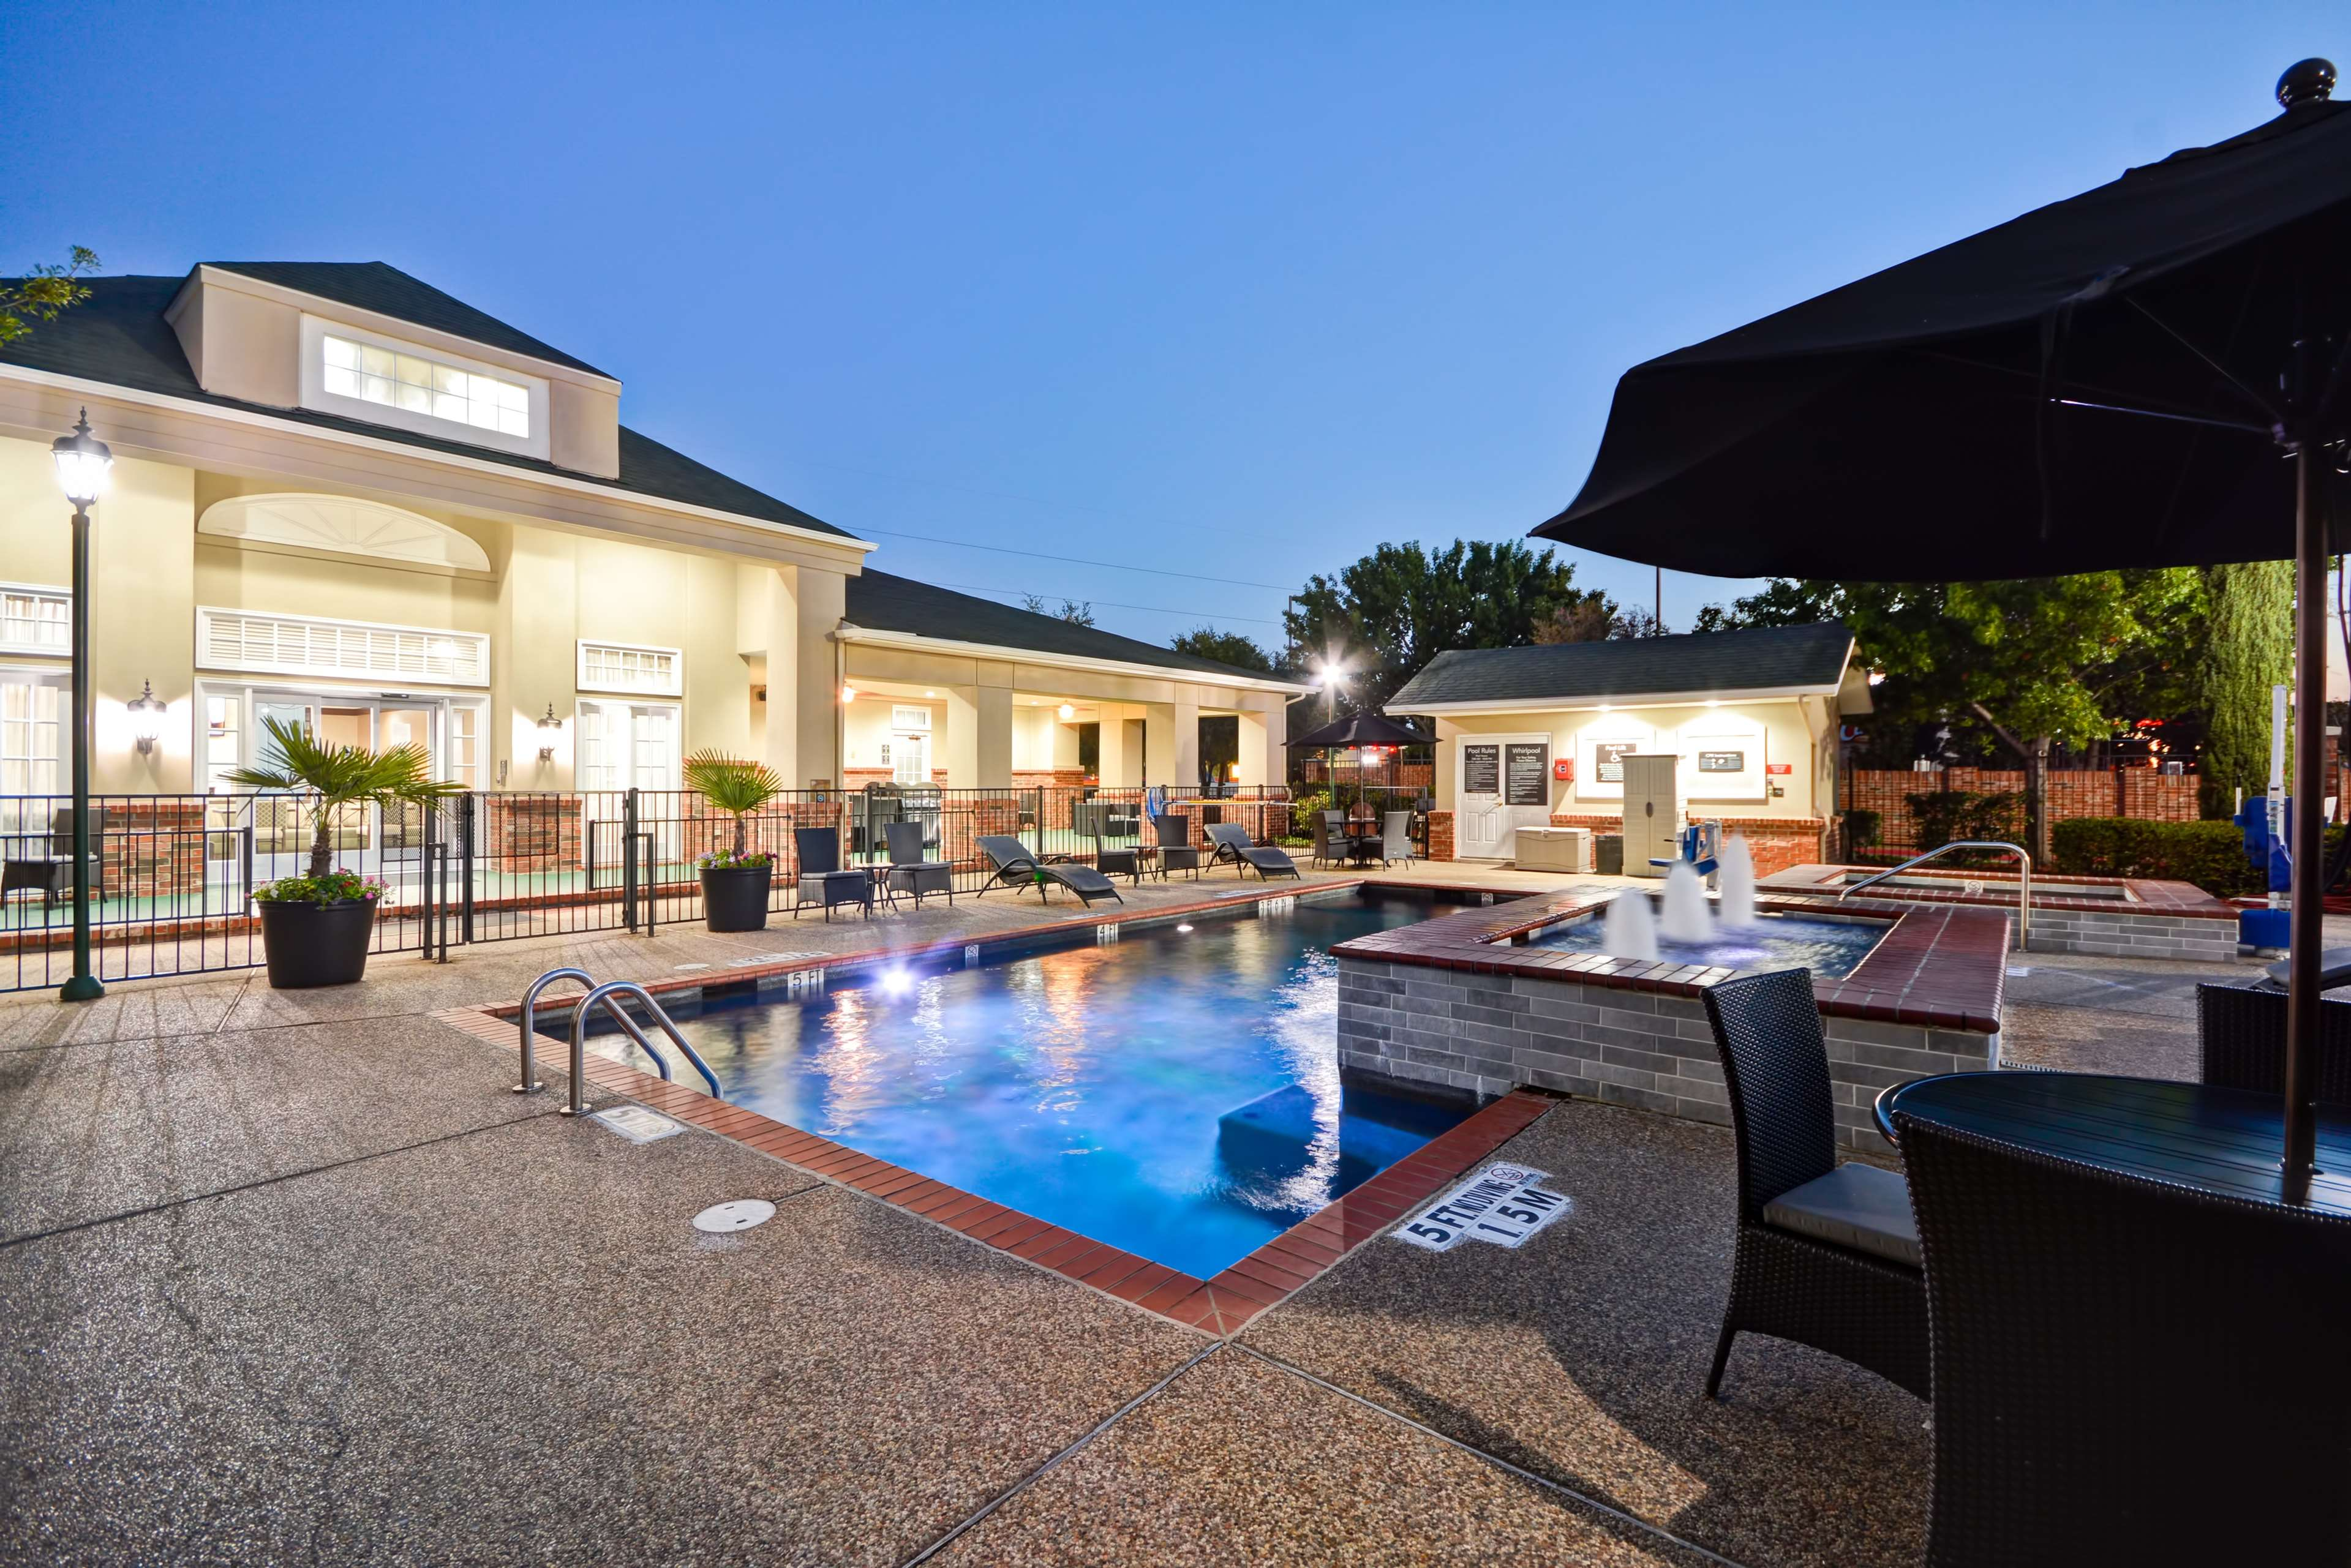 Homewood Suites by Hilton Dallas-Lewisville image 8